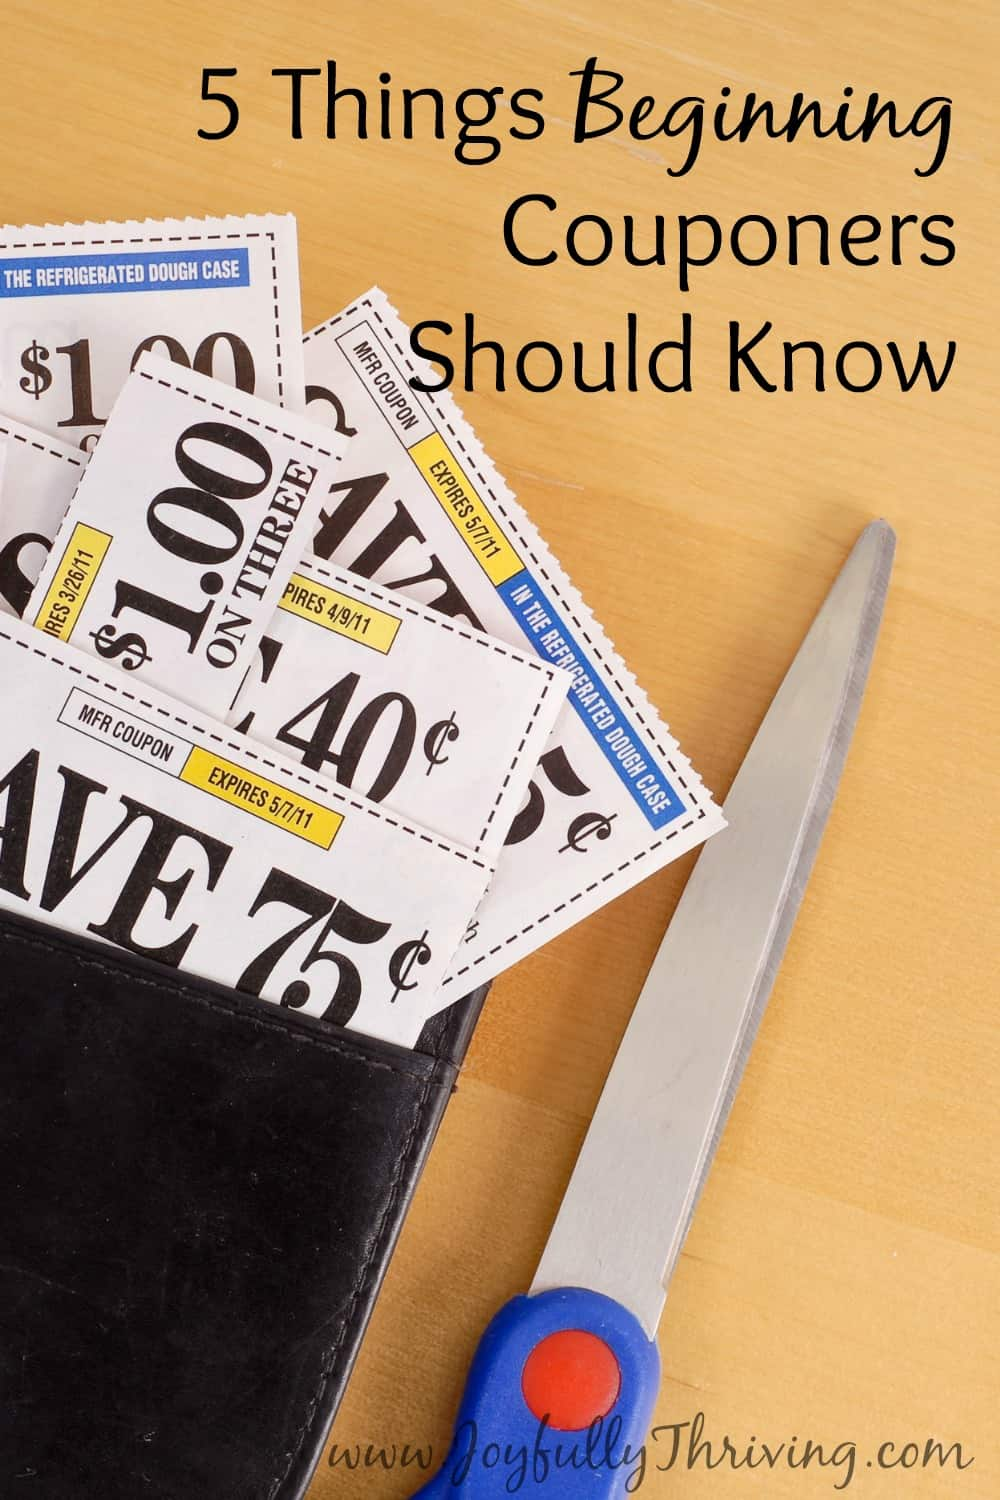 5 things beginning couponers should know altavistaventures Choice Image